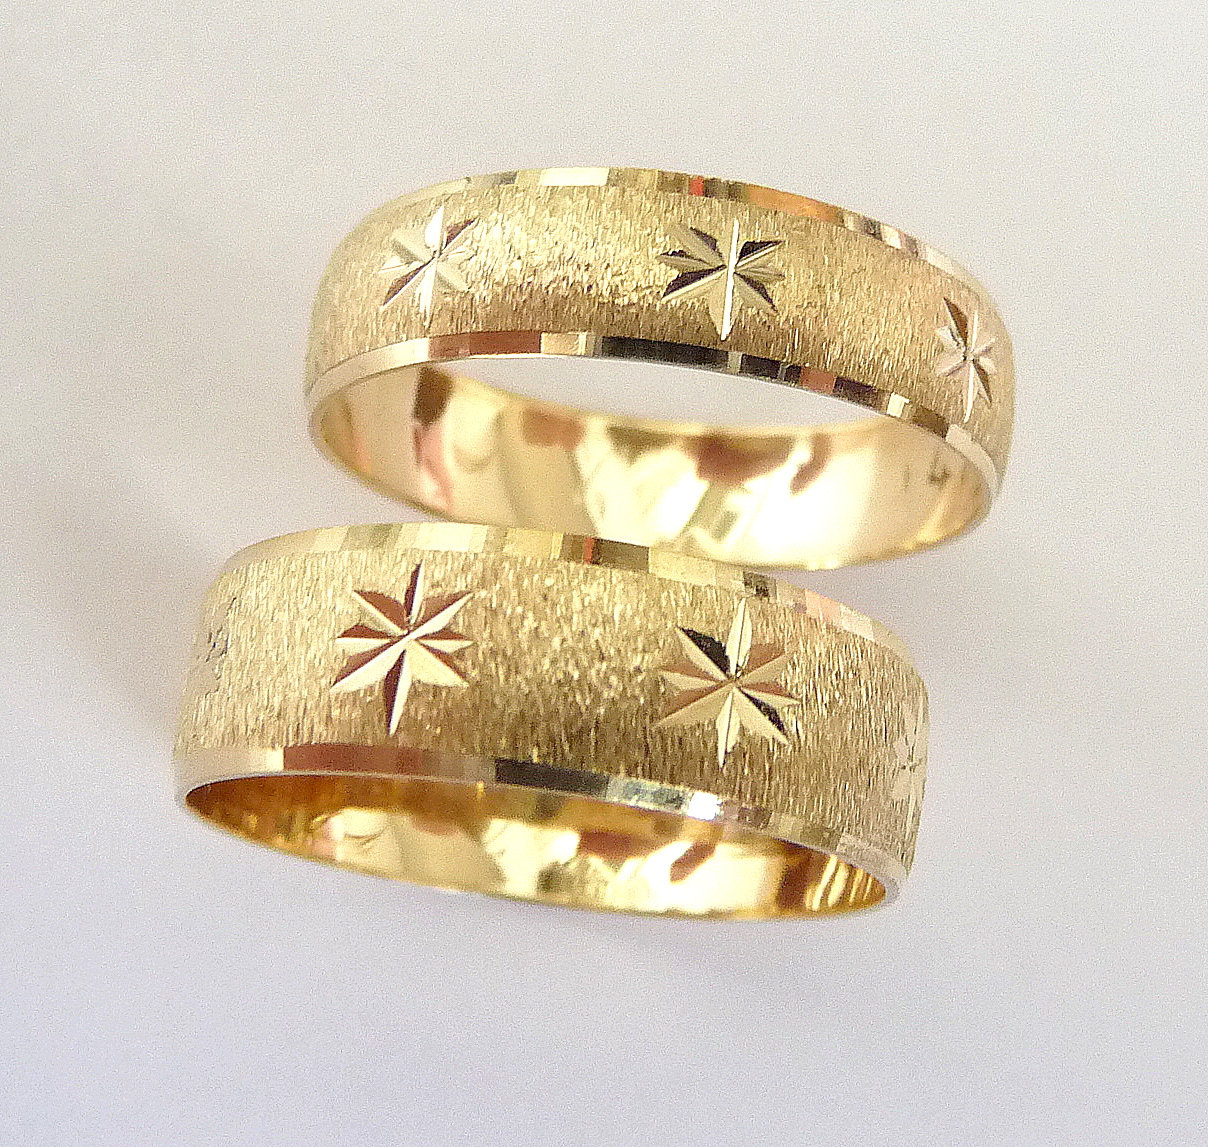 wedding rings set gold men and women gold wedding ring sets set gold men and women wedding bands with stars zoom